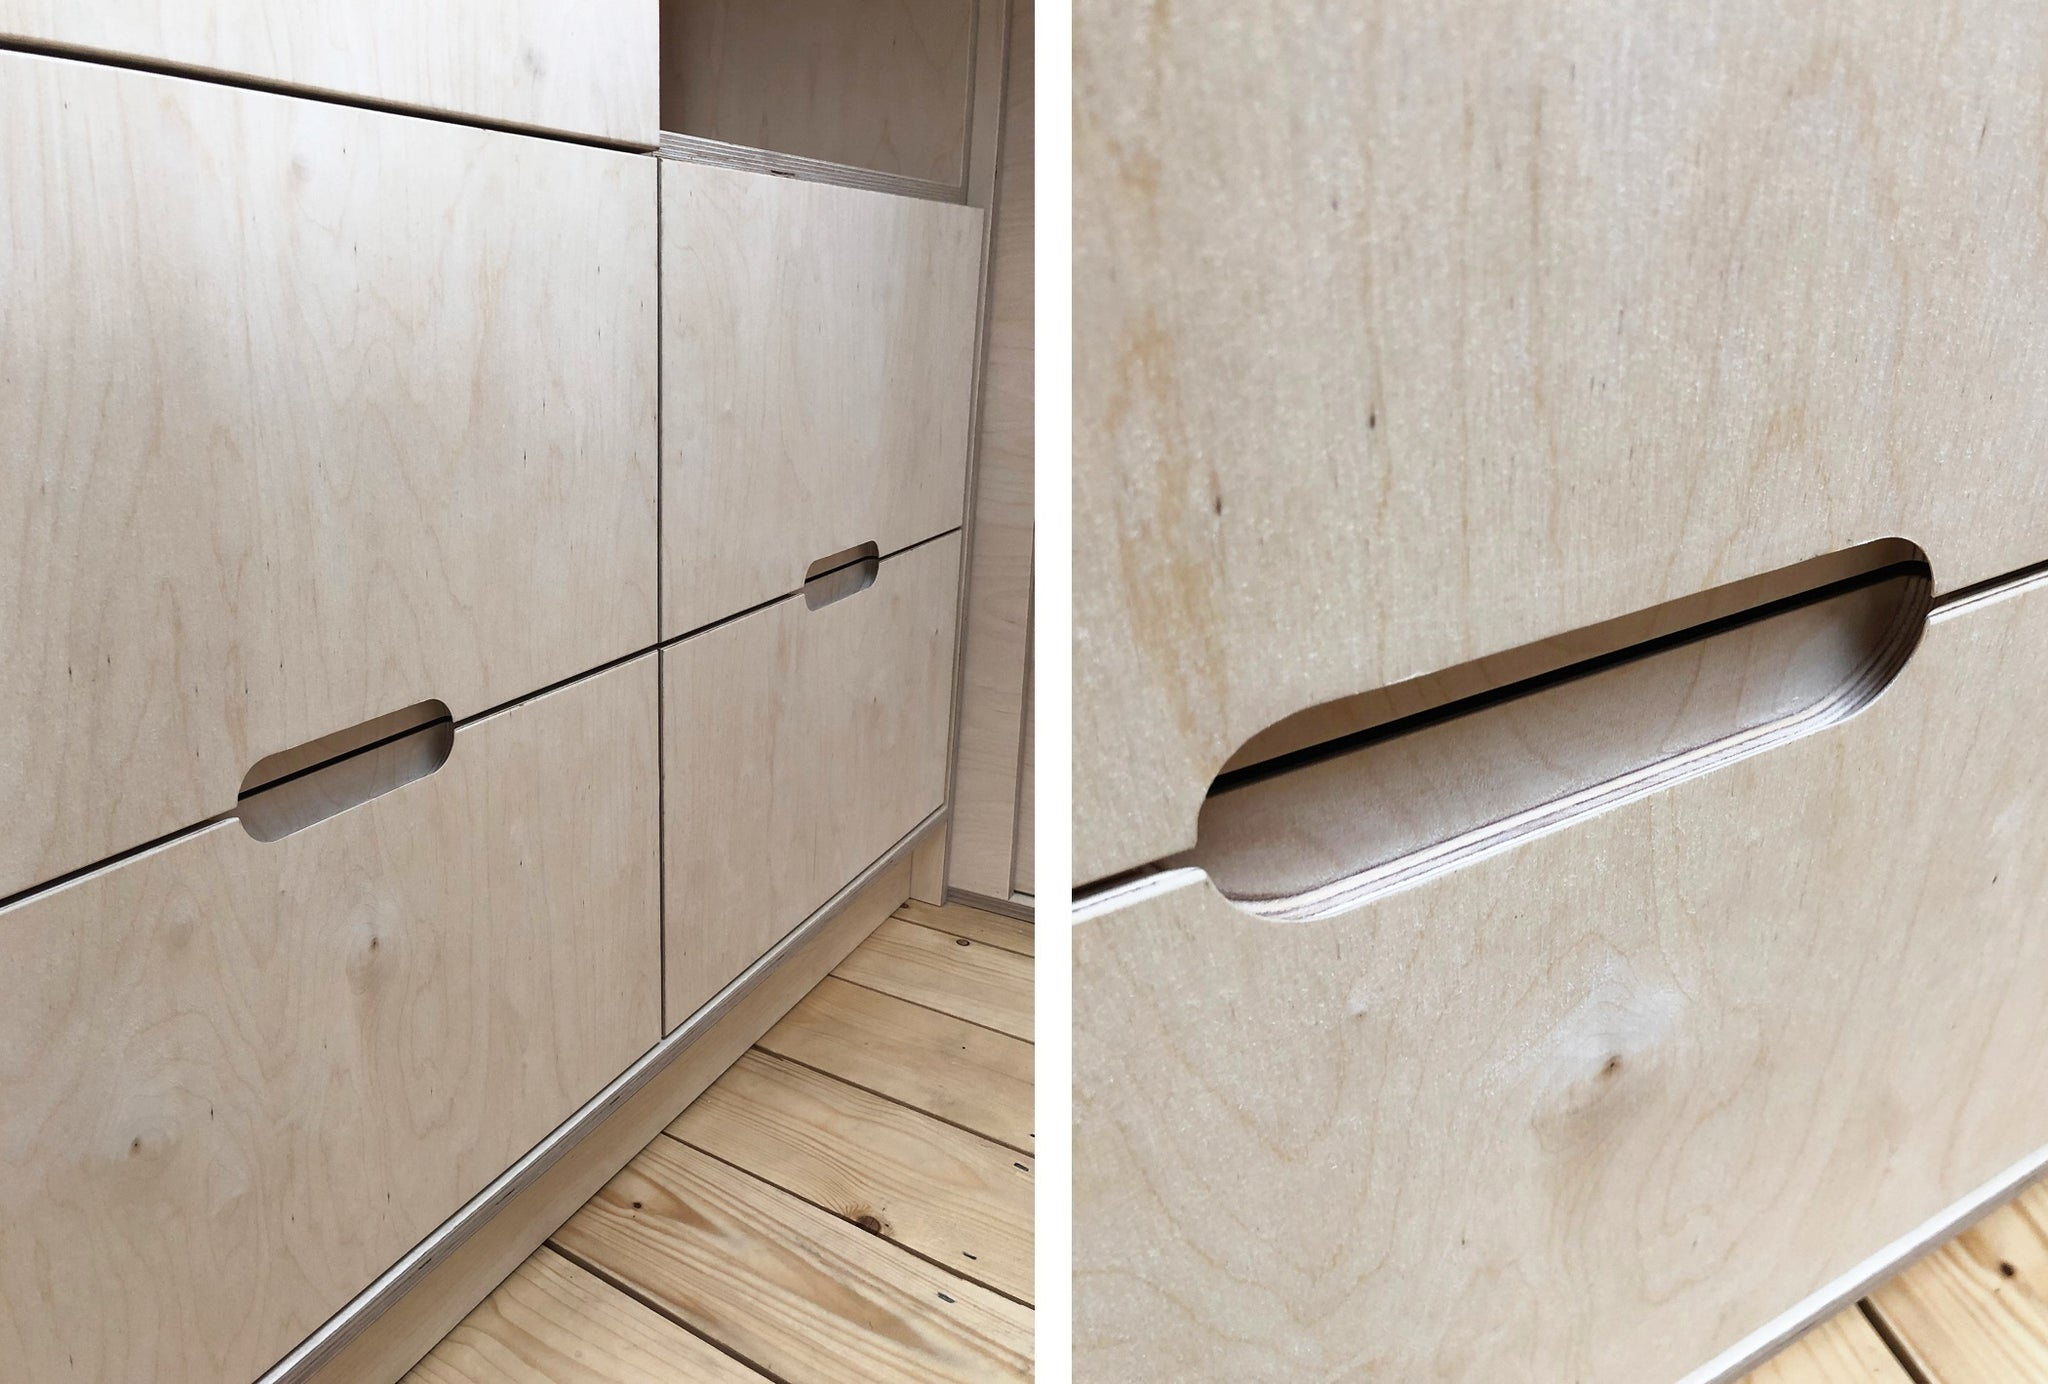 Bespoke fitted wardrobe in raw birch plywood and is featuring finger pull handles & soft close drawers. Designed and made by Jon Grant London in Leyton, East London.